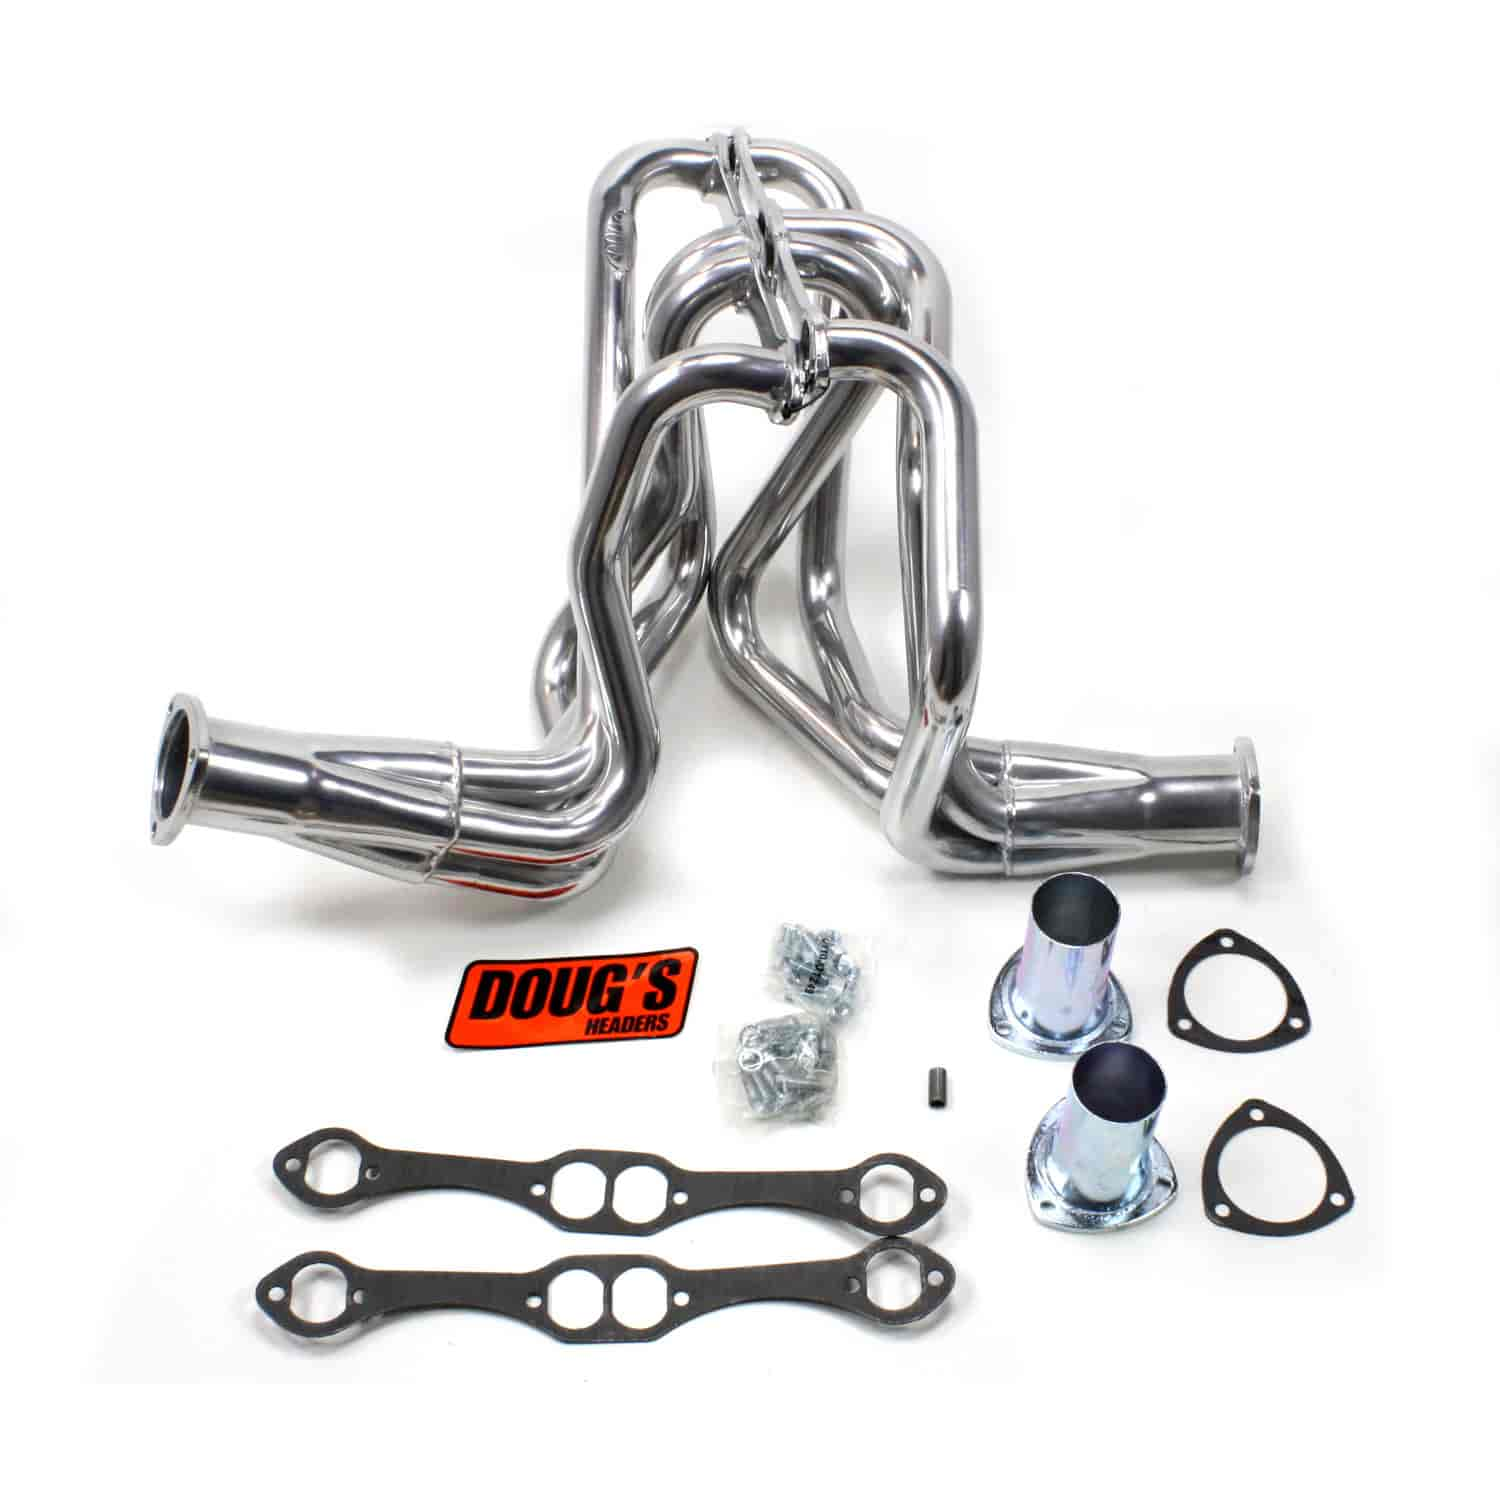 Doug's Headers D358 Metallic Ceramic Coated Headers 1958